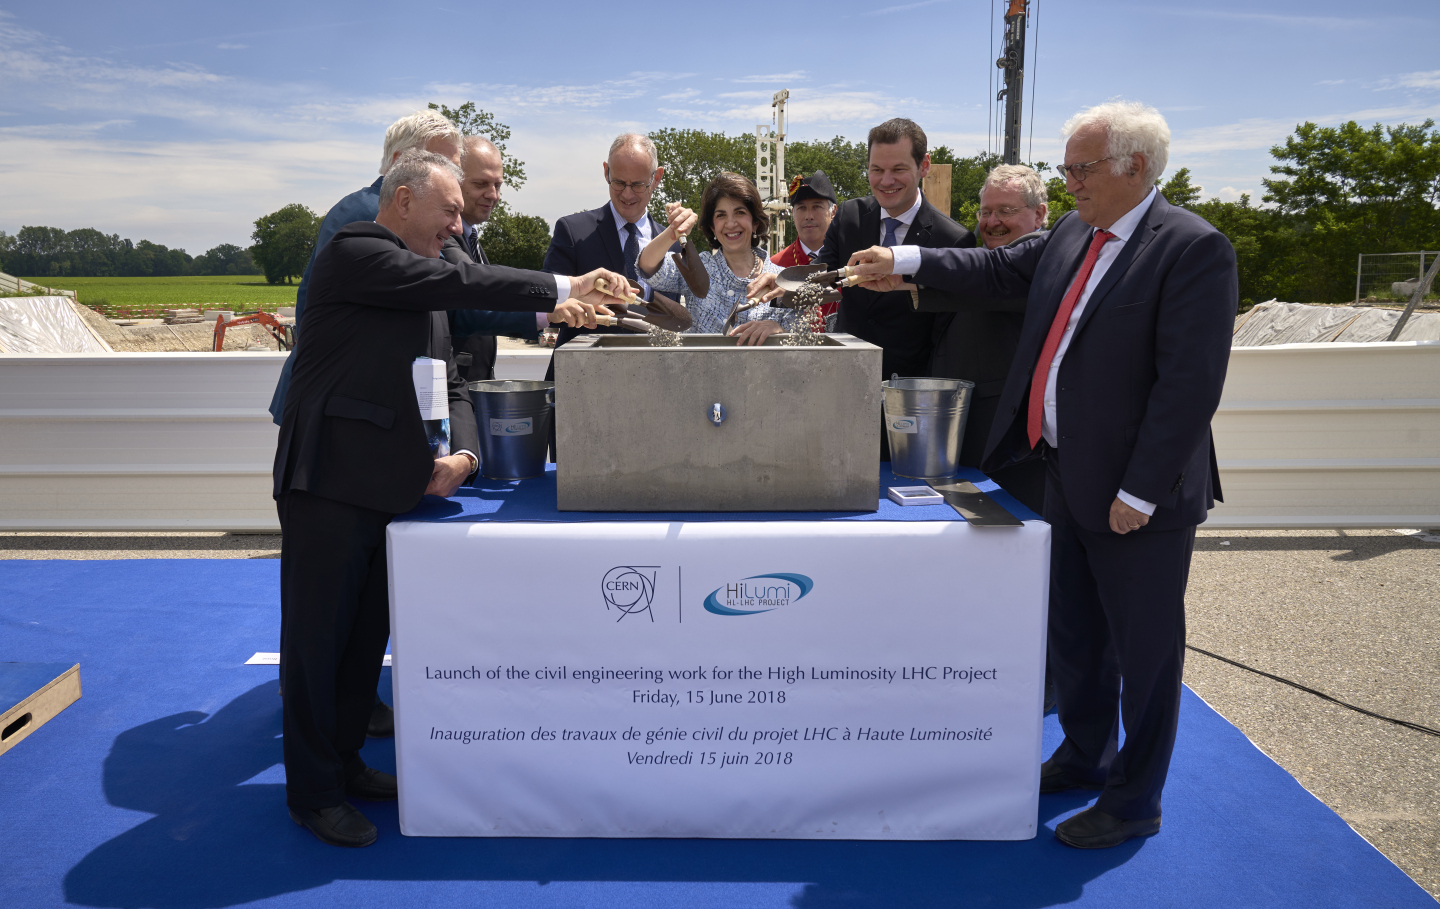 HL-LHC (High-Luminosity LHC) first stone ceremony June 2018